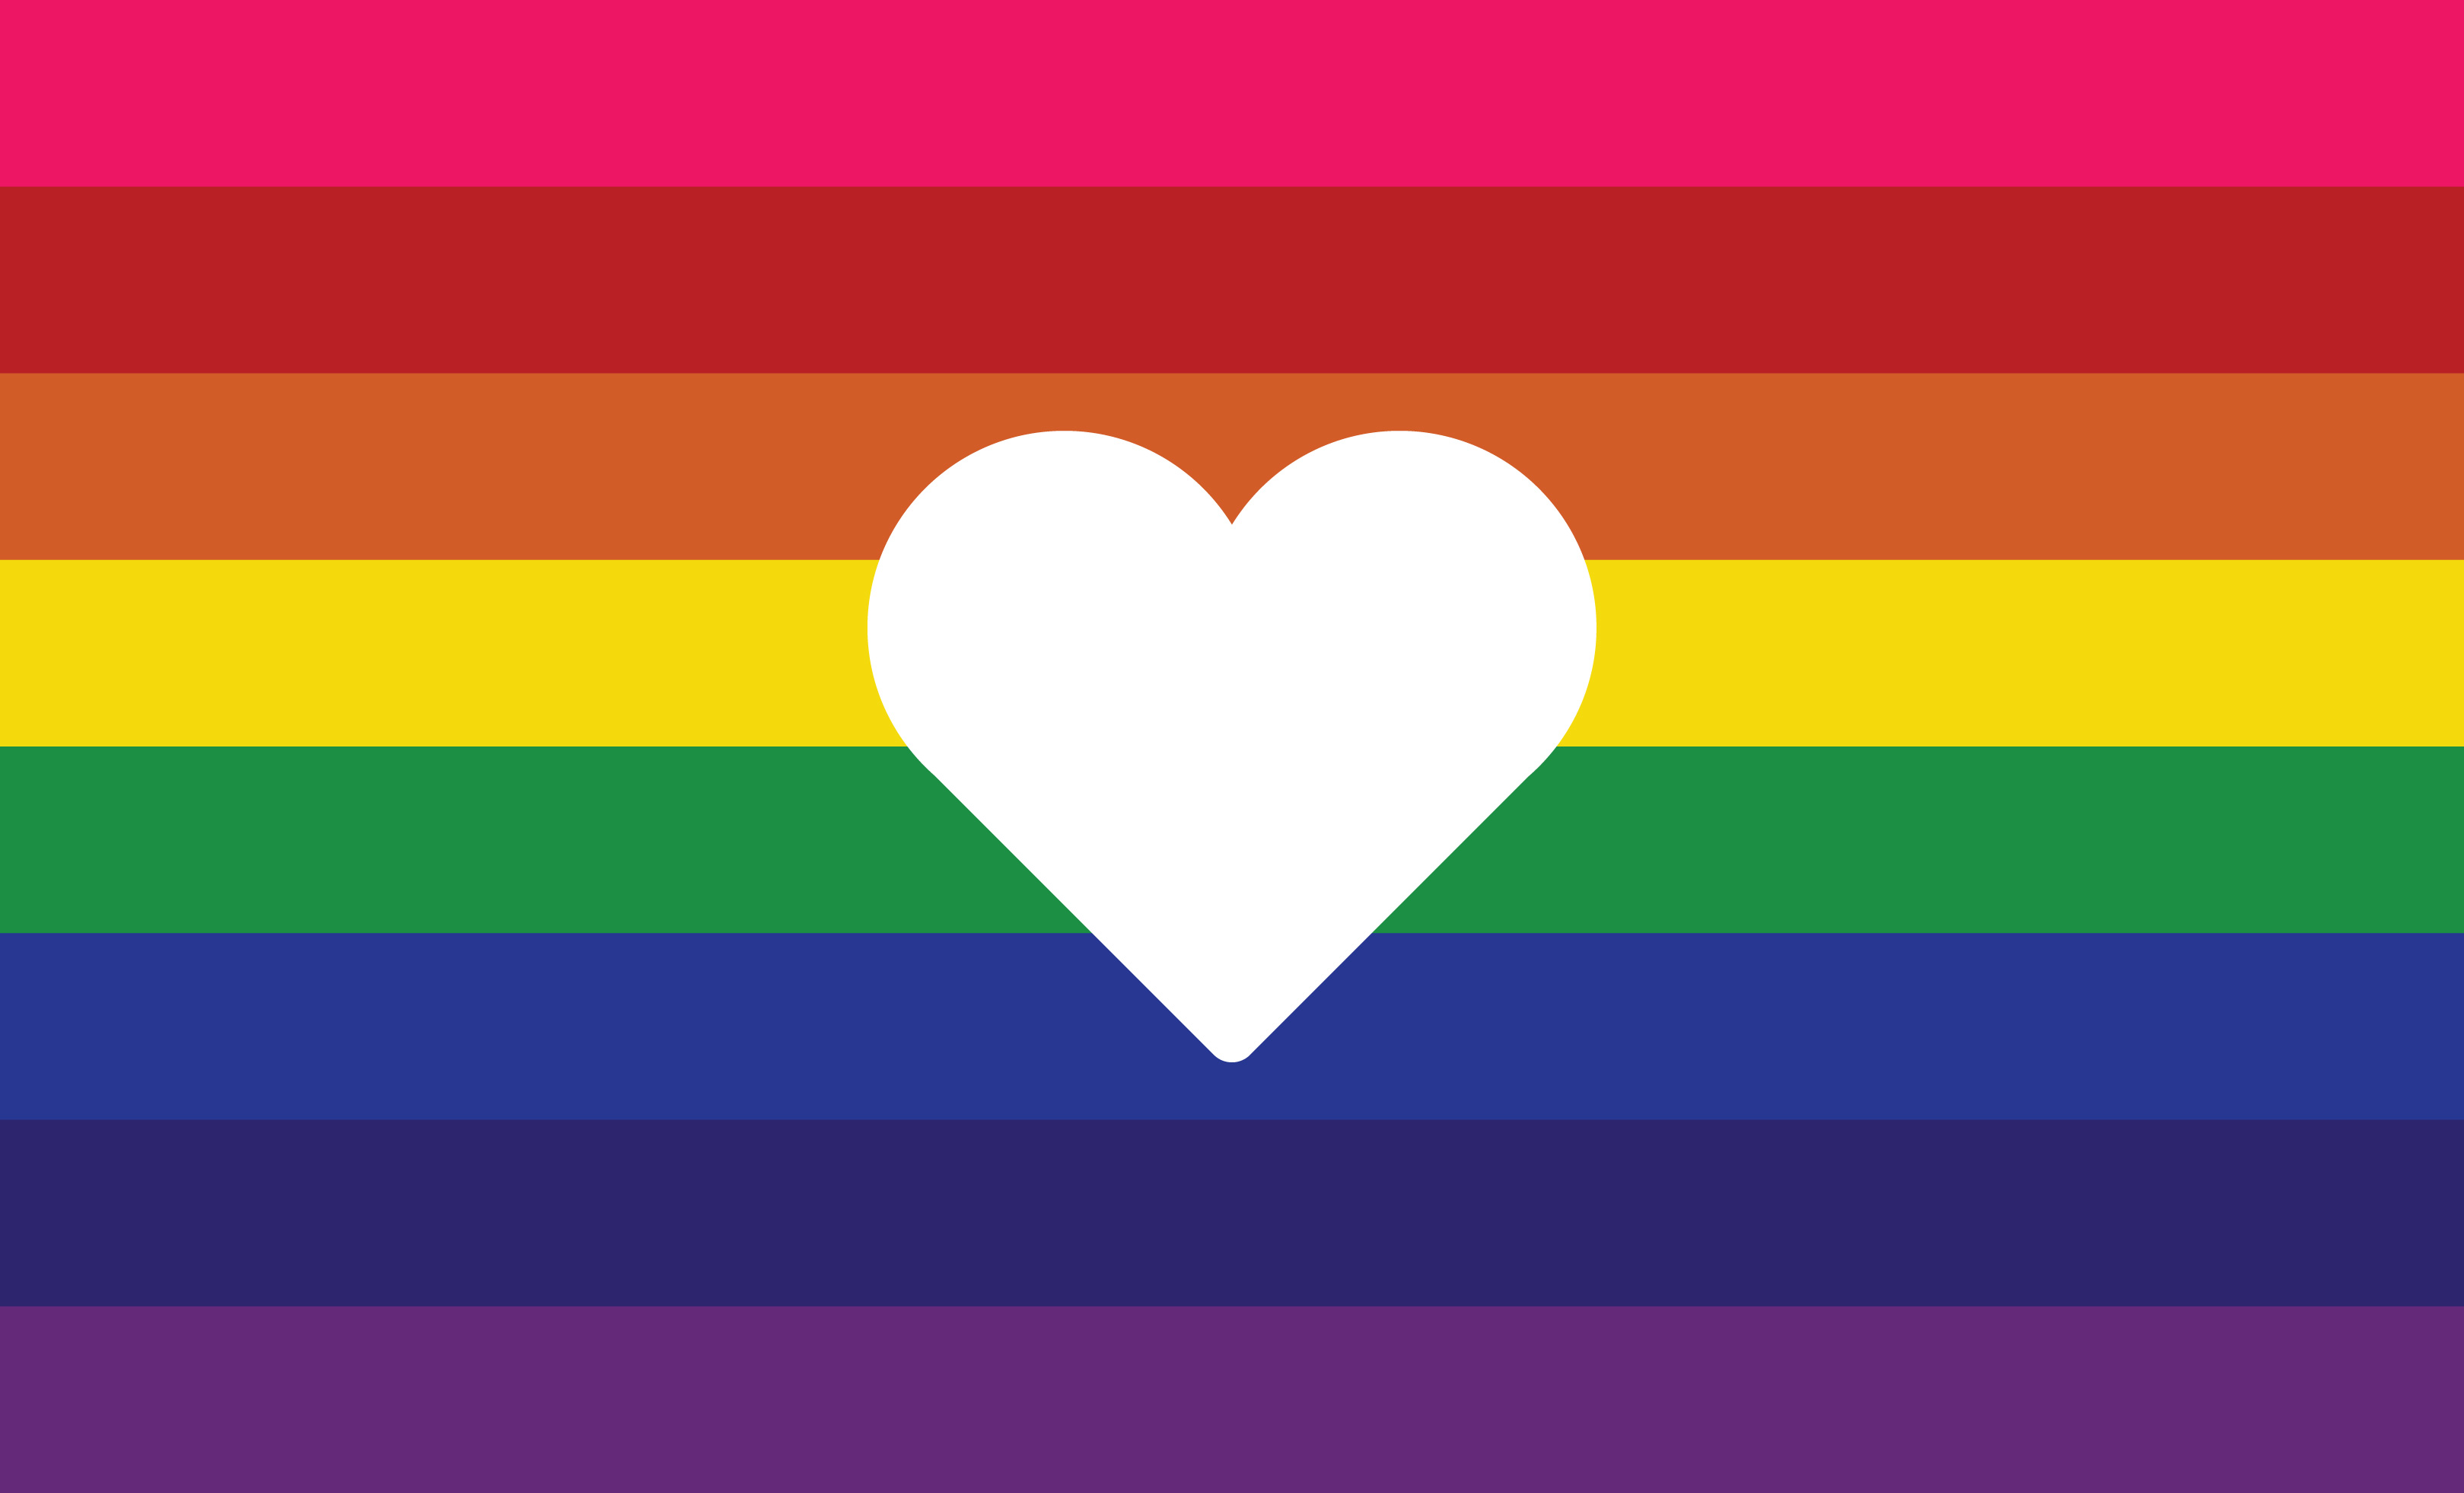 dollythellama love wins marriage equality lgbt gaypride header 2